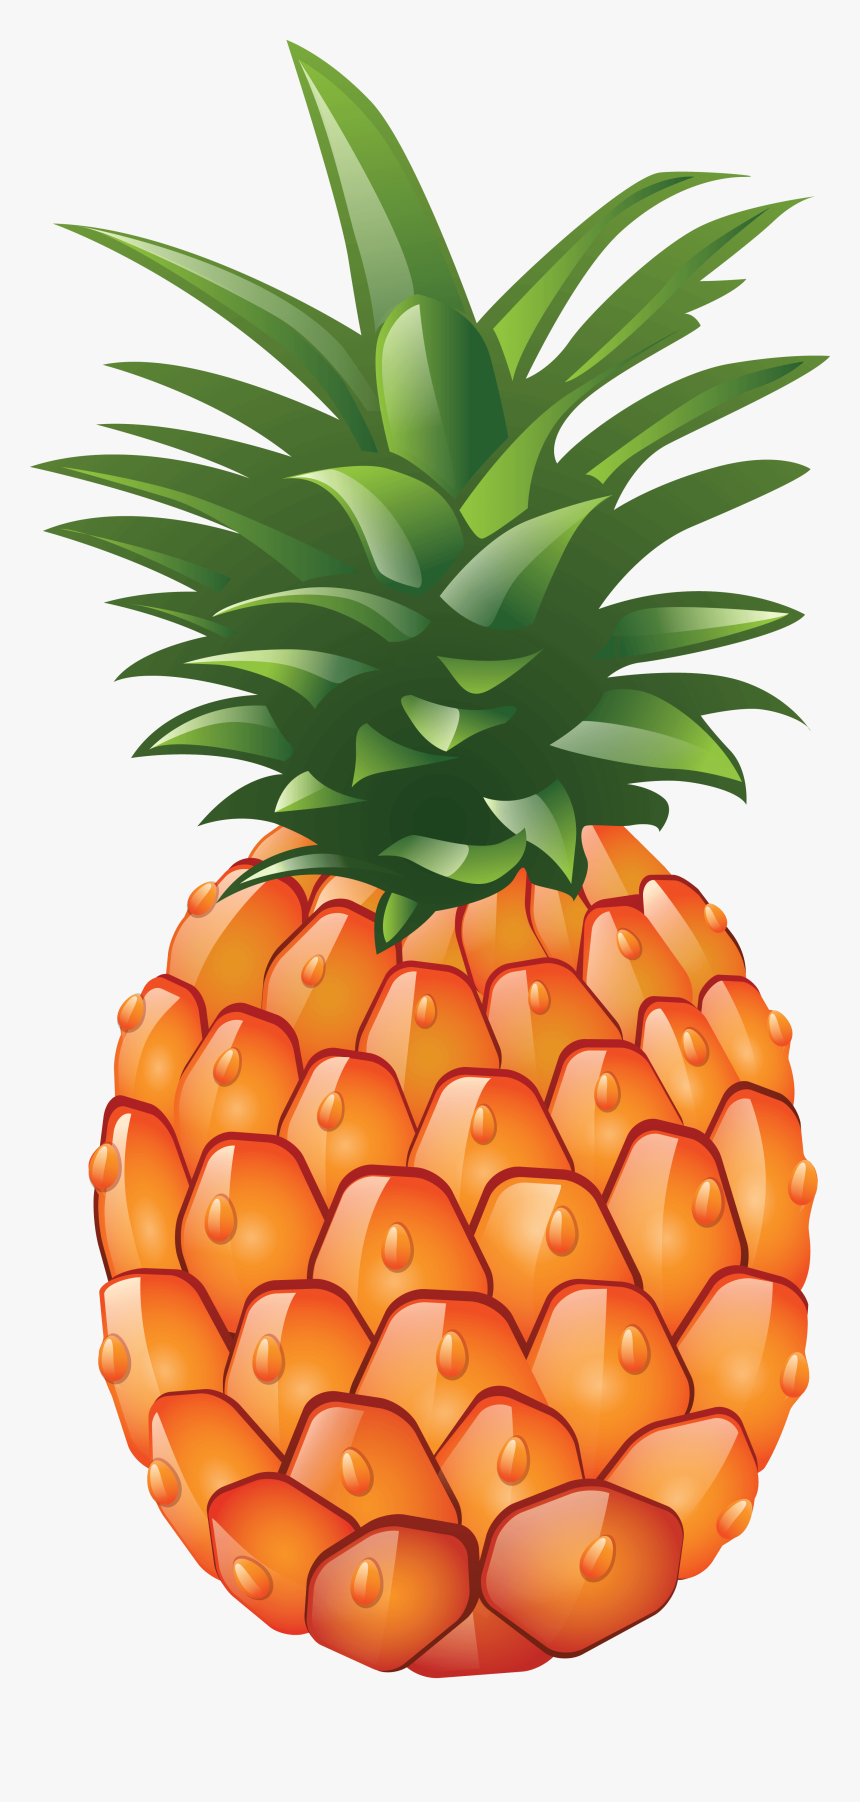 Pineapple Png Photo Image - Pineapple Fruit Clipart Png, Transparent Png, Free Download